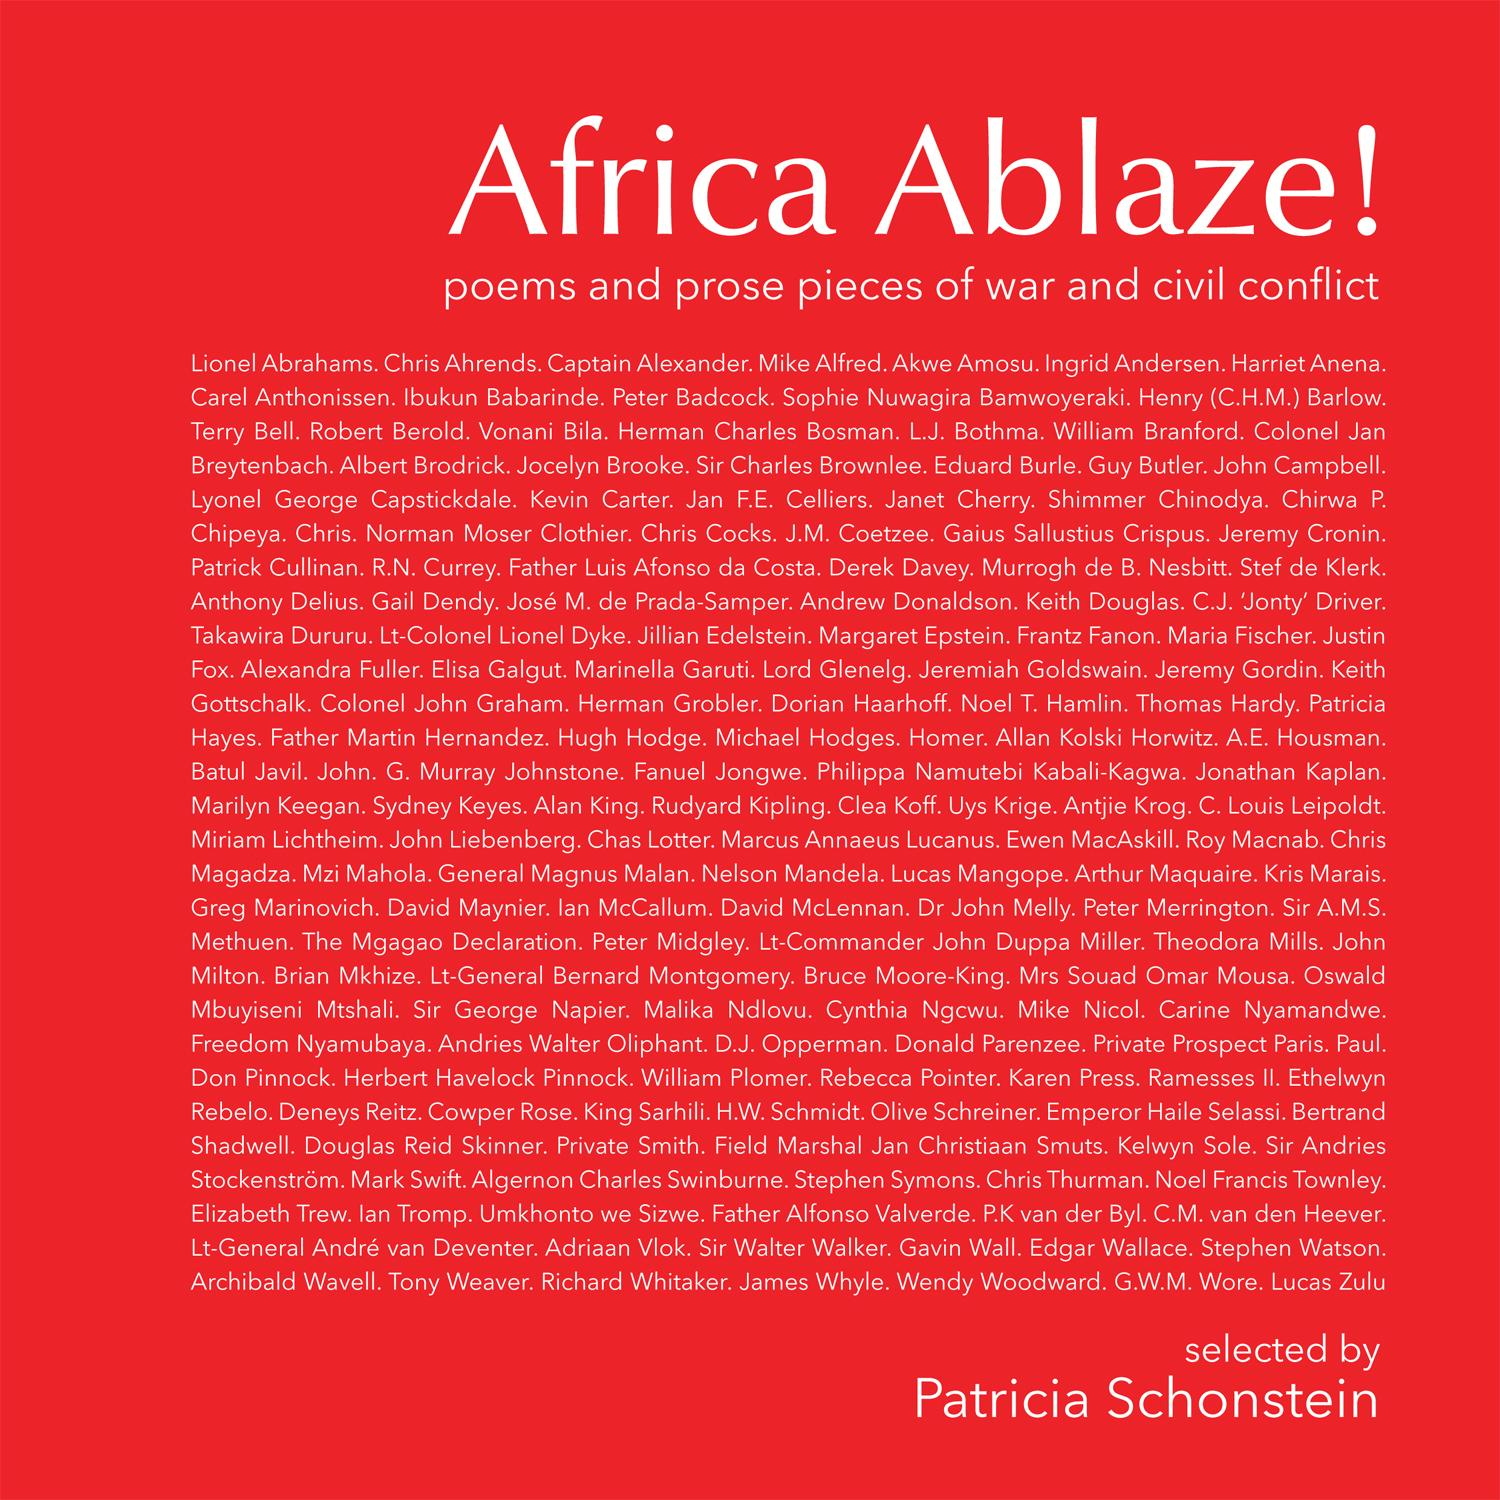 Cover of the poetry anthology, Africa Ablaze